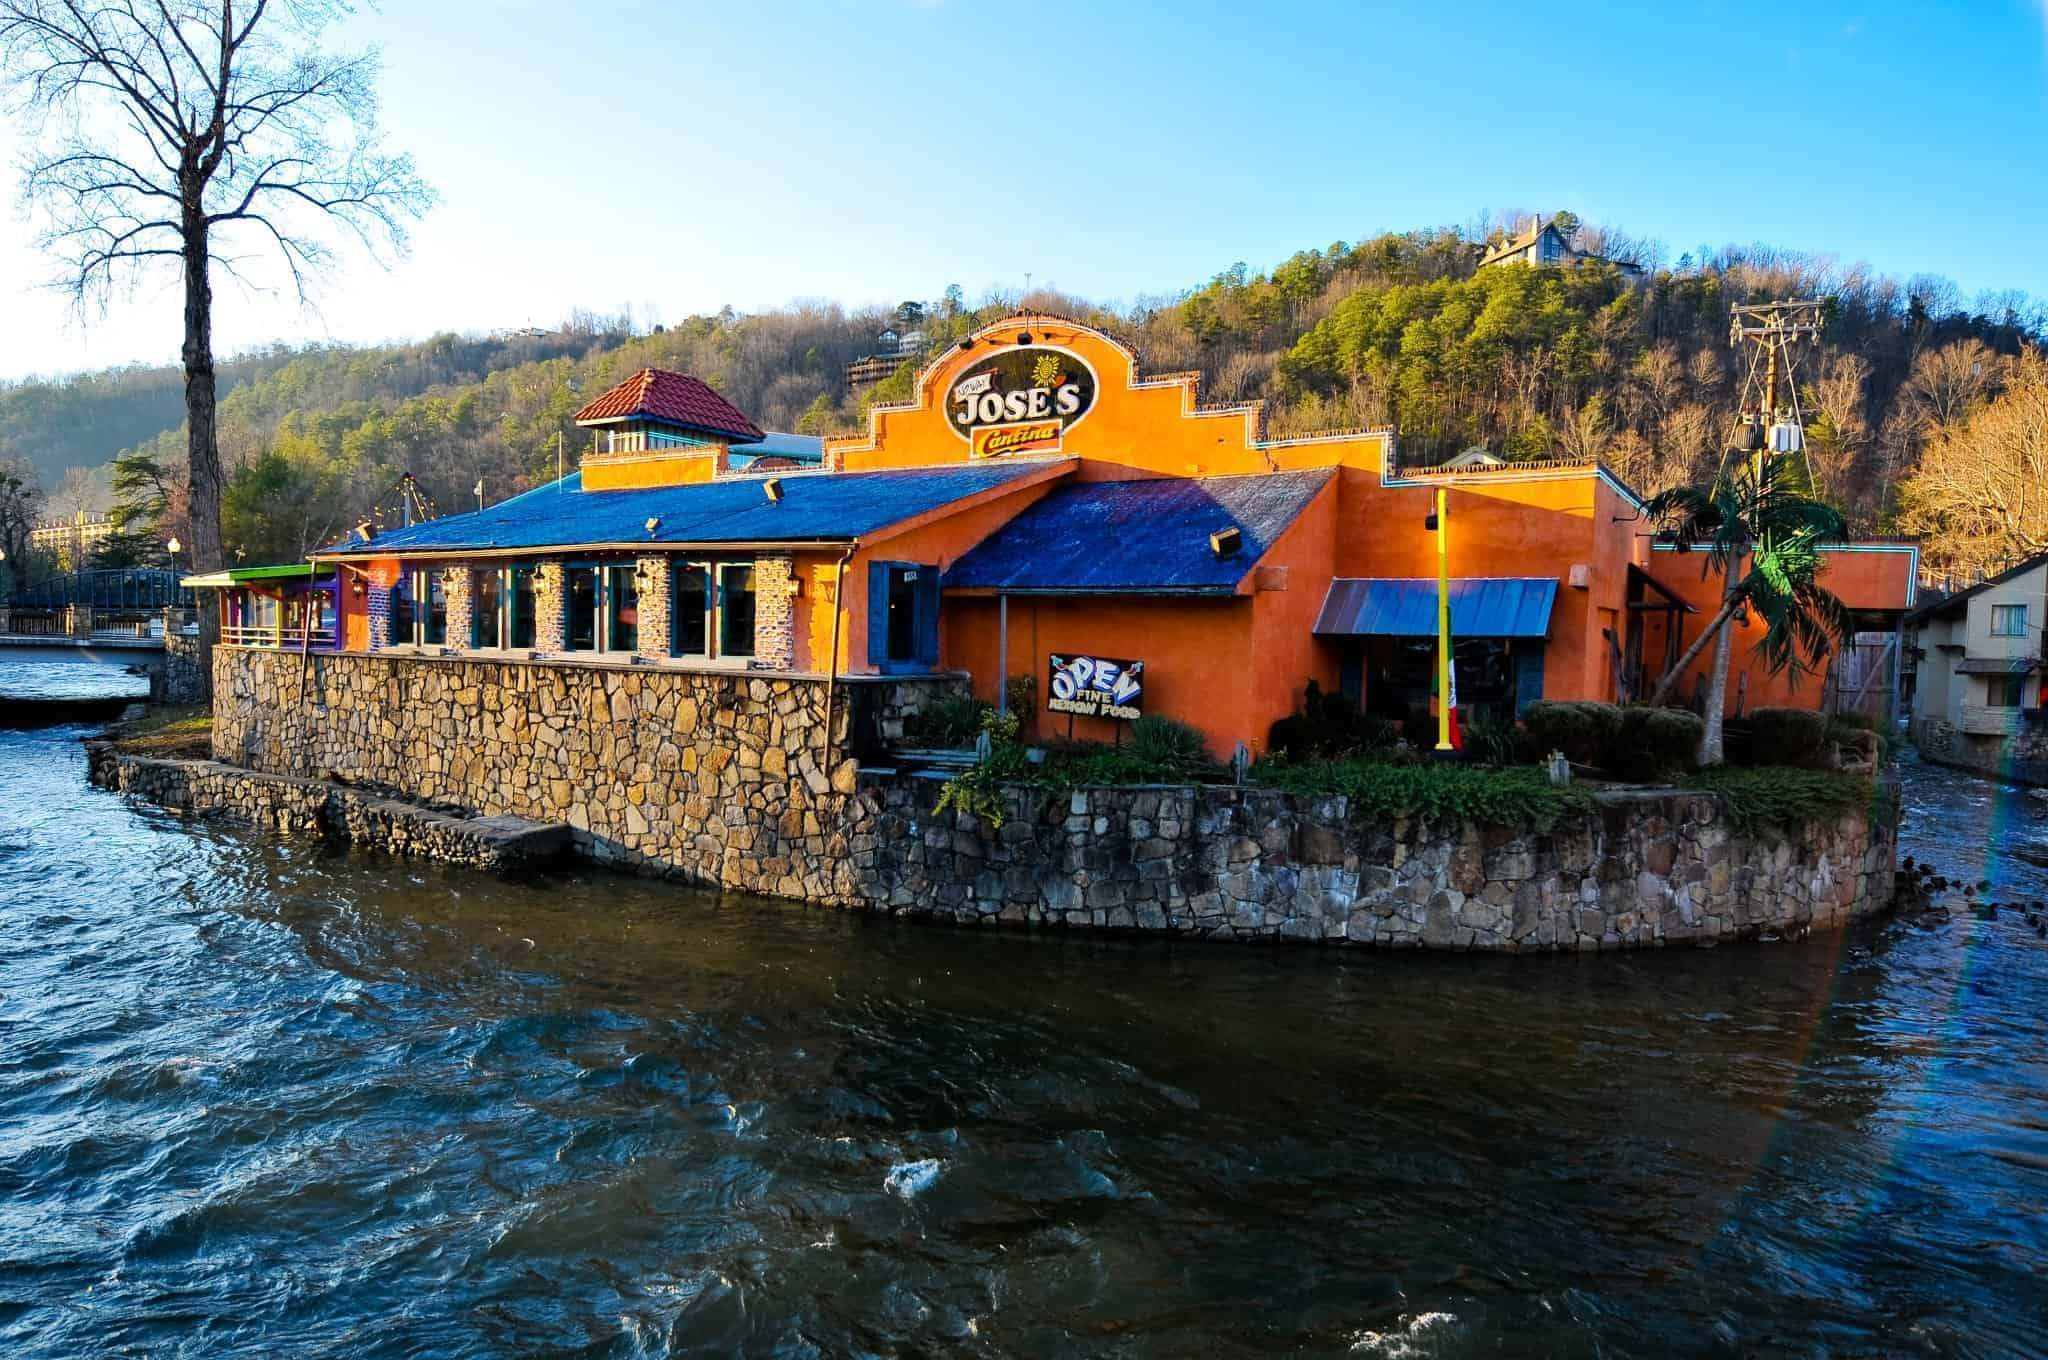 No Way Jose's Cantina in Gatlinburg, TN